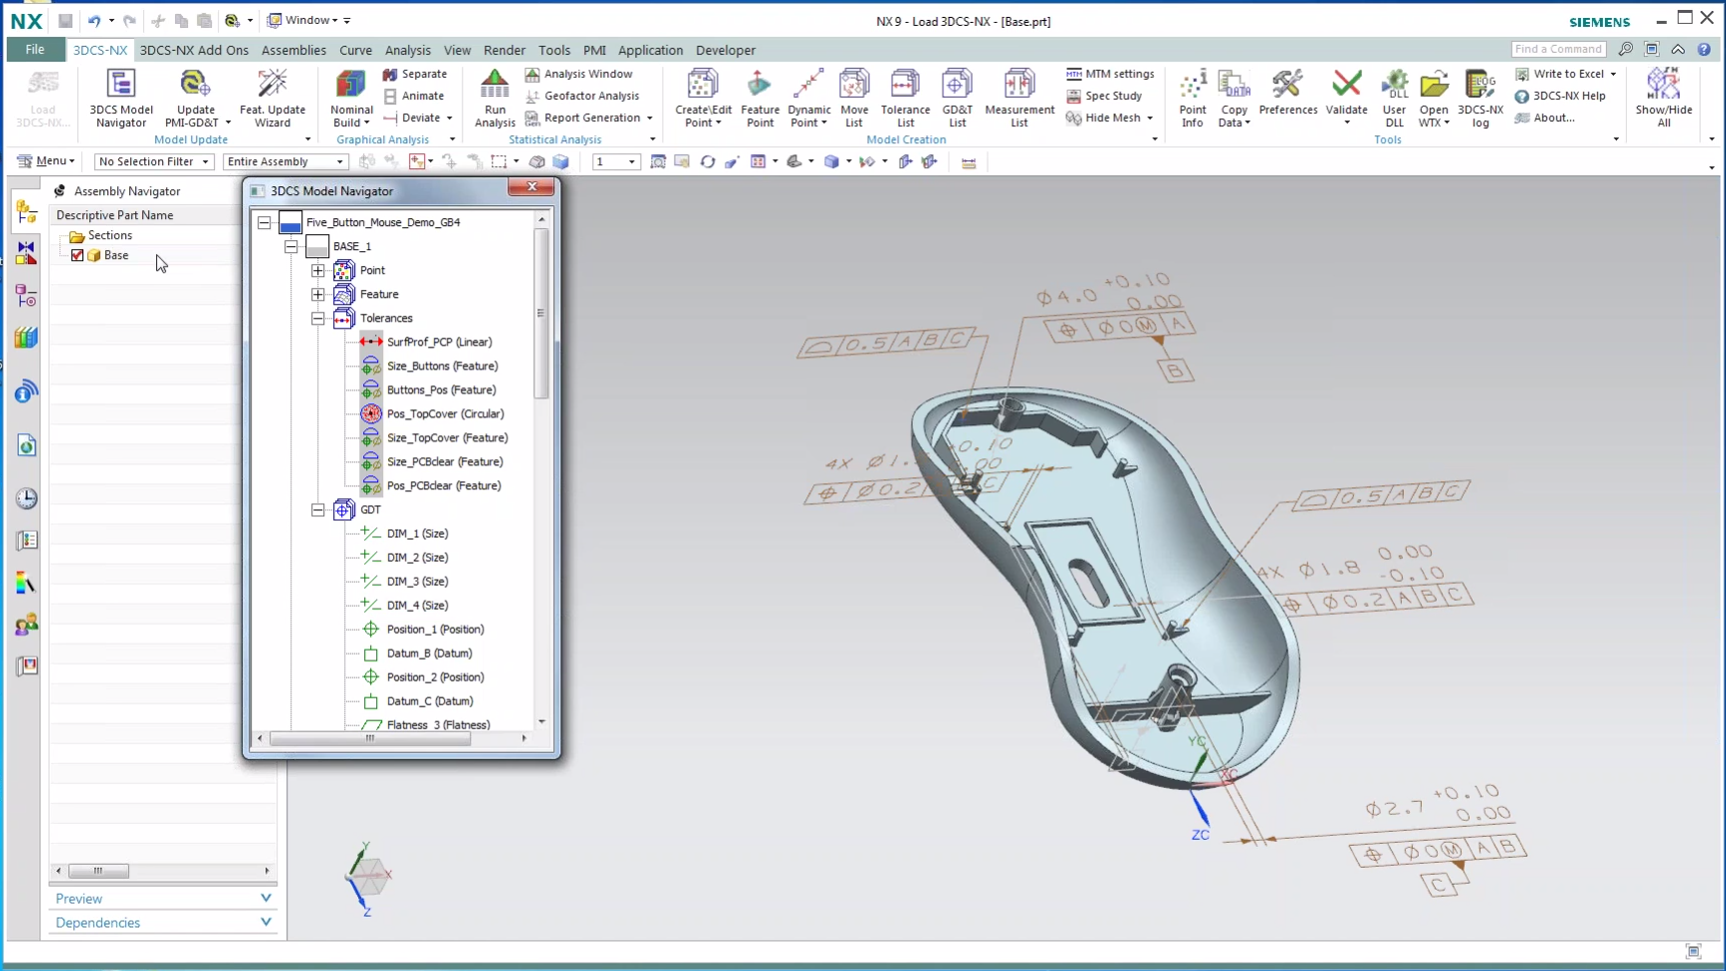 3dcs-nx-gdandt-detailed